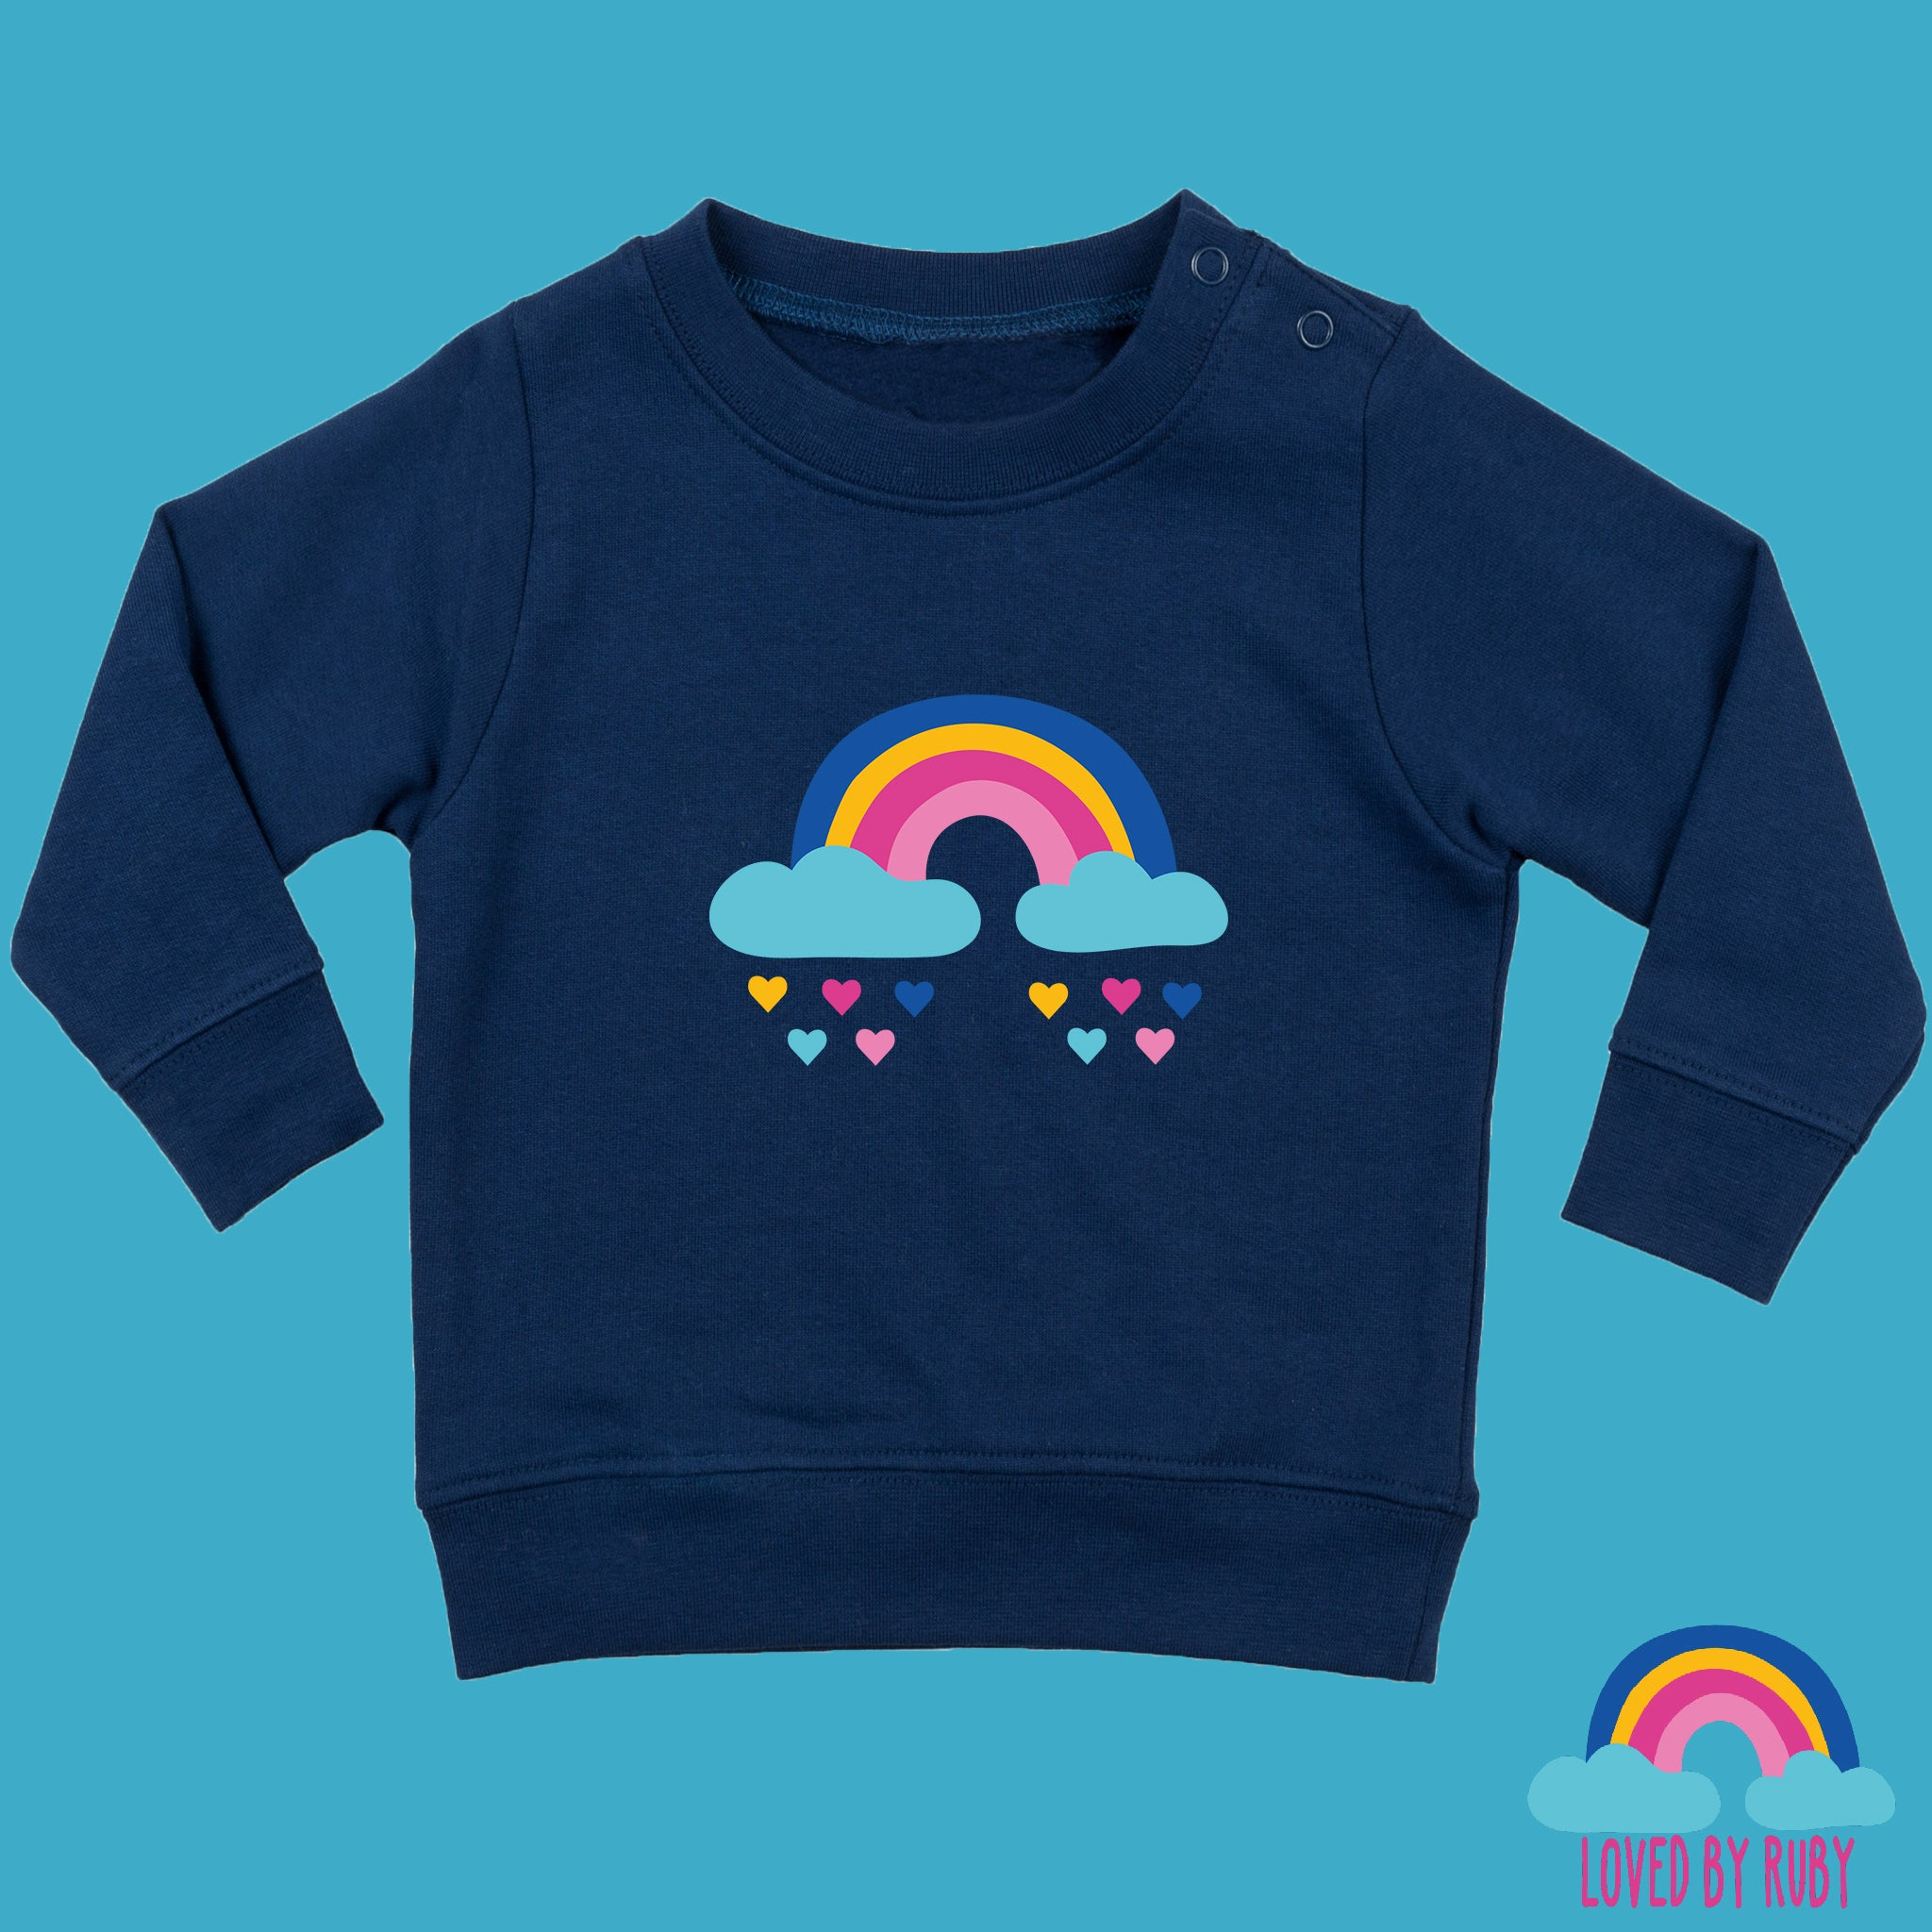 Rainbow Baby Toddler Jumper in Navy Blue Rainbow Hearts Design - Ruby and the Rainbow